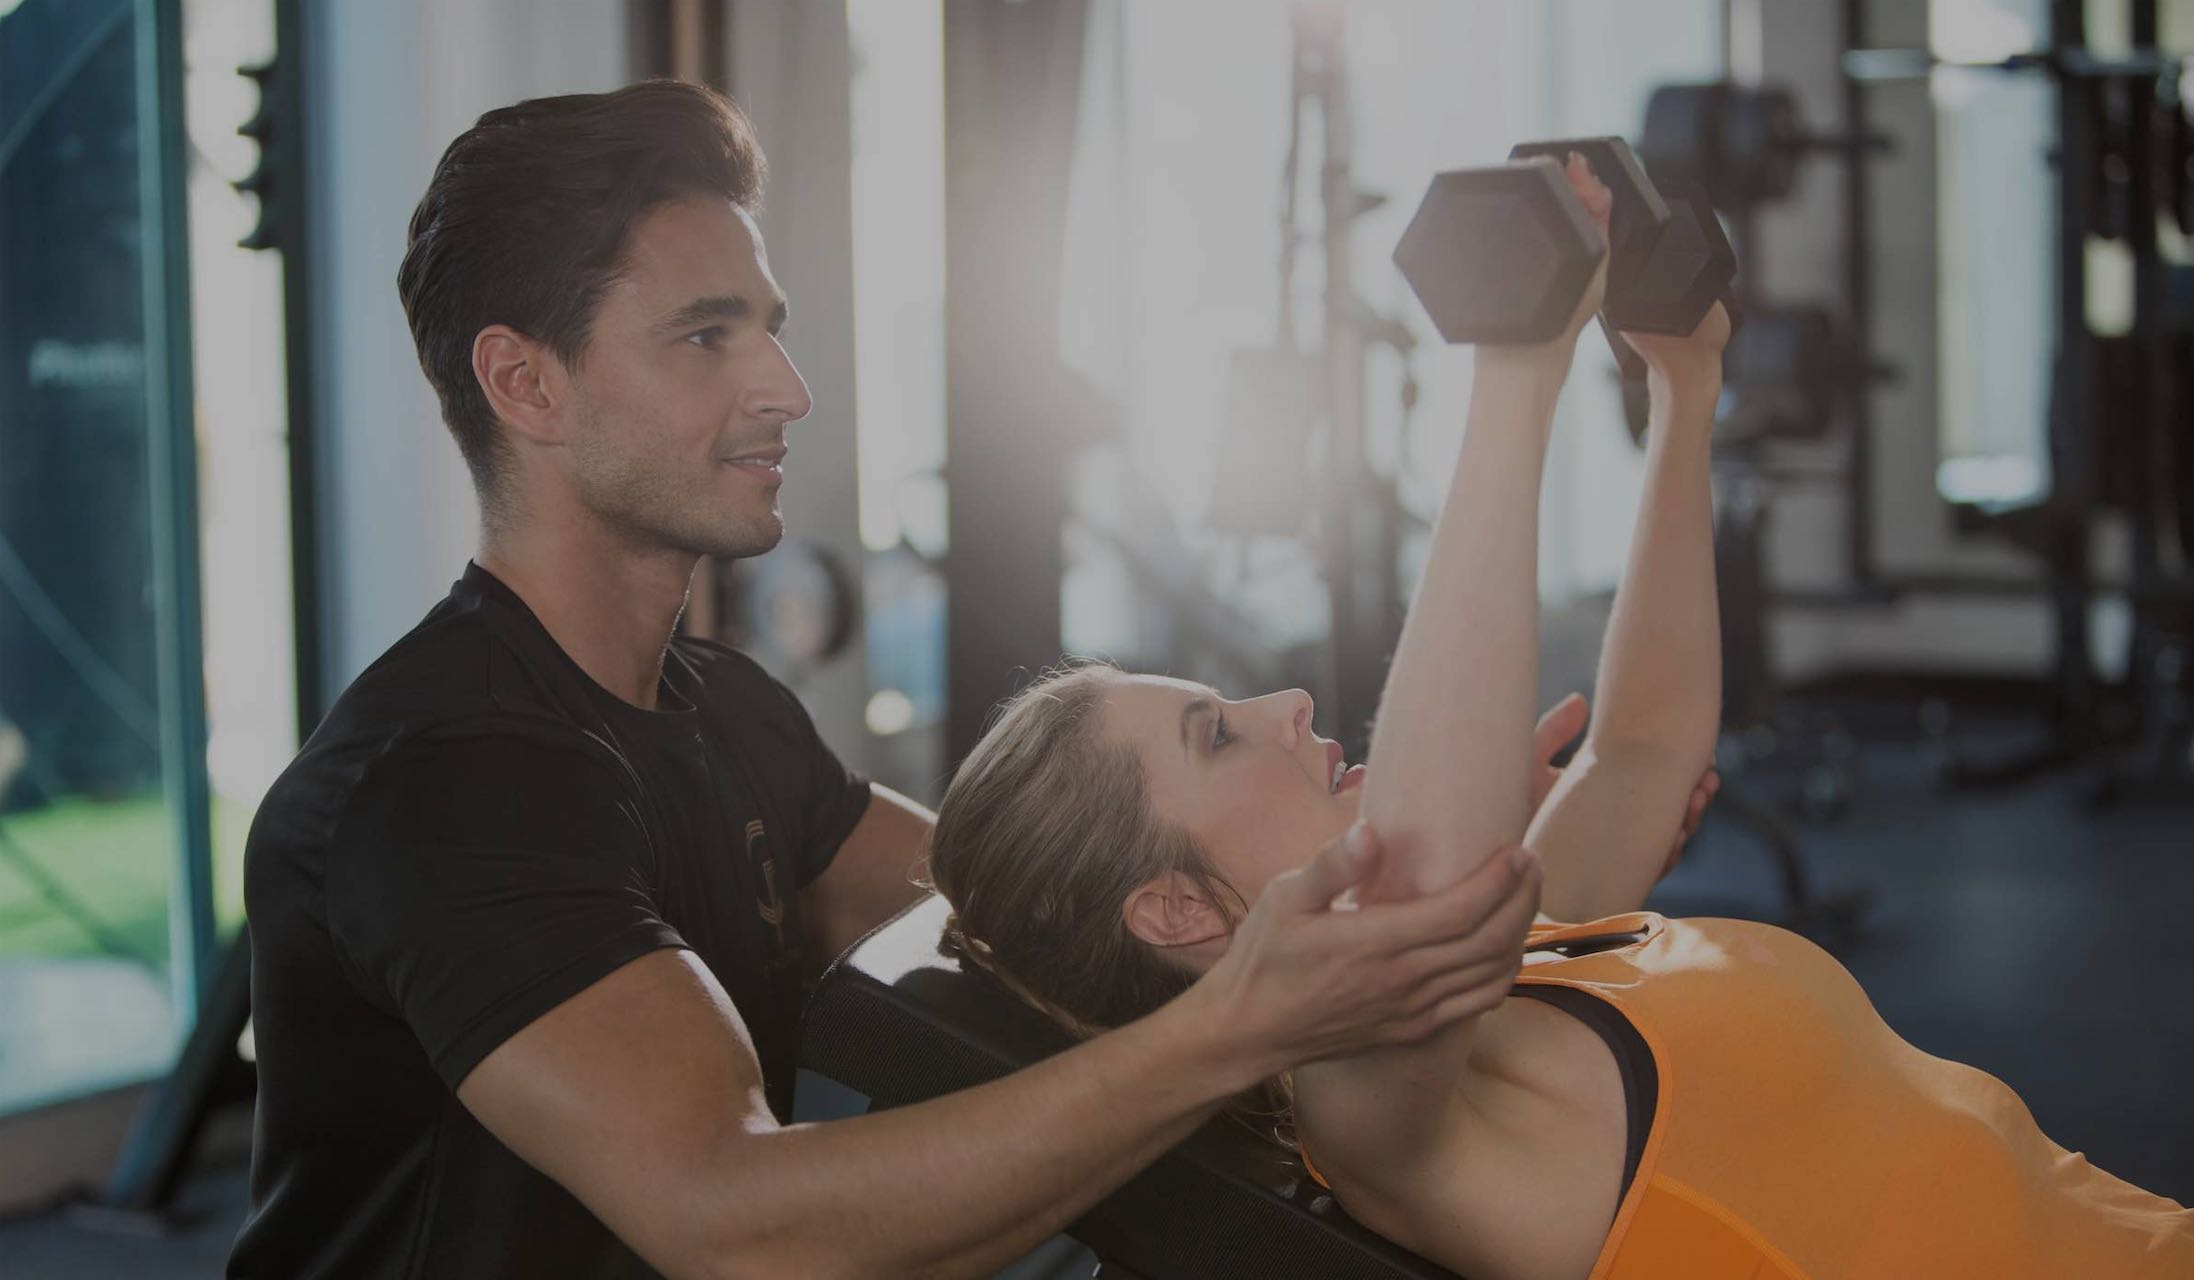 TOP 5 FITNESS MYTHS, BUSTED.